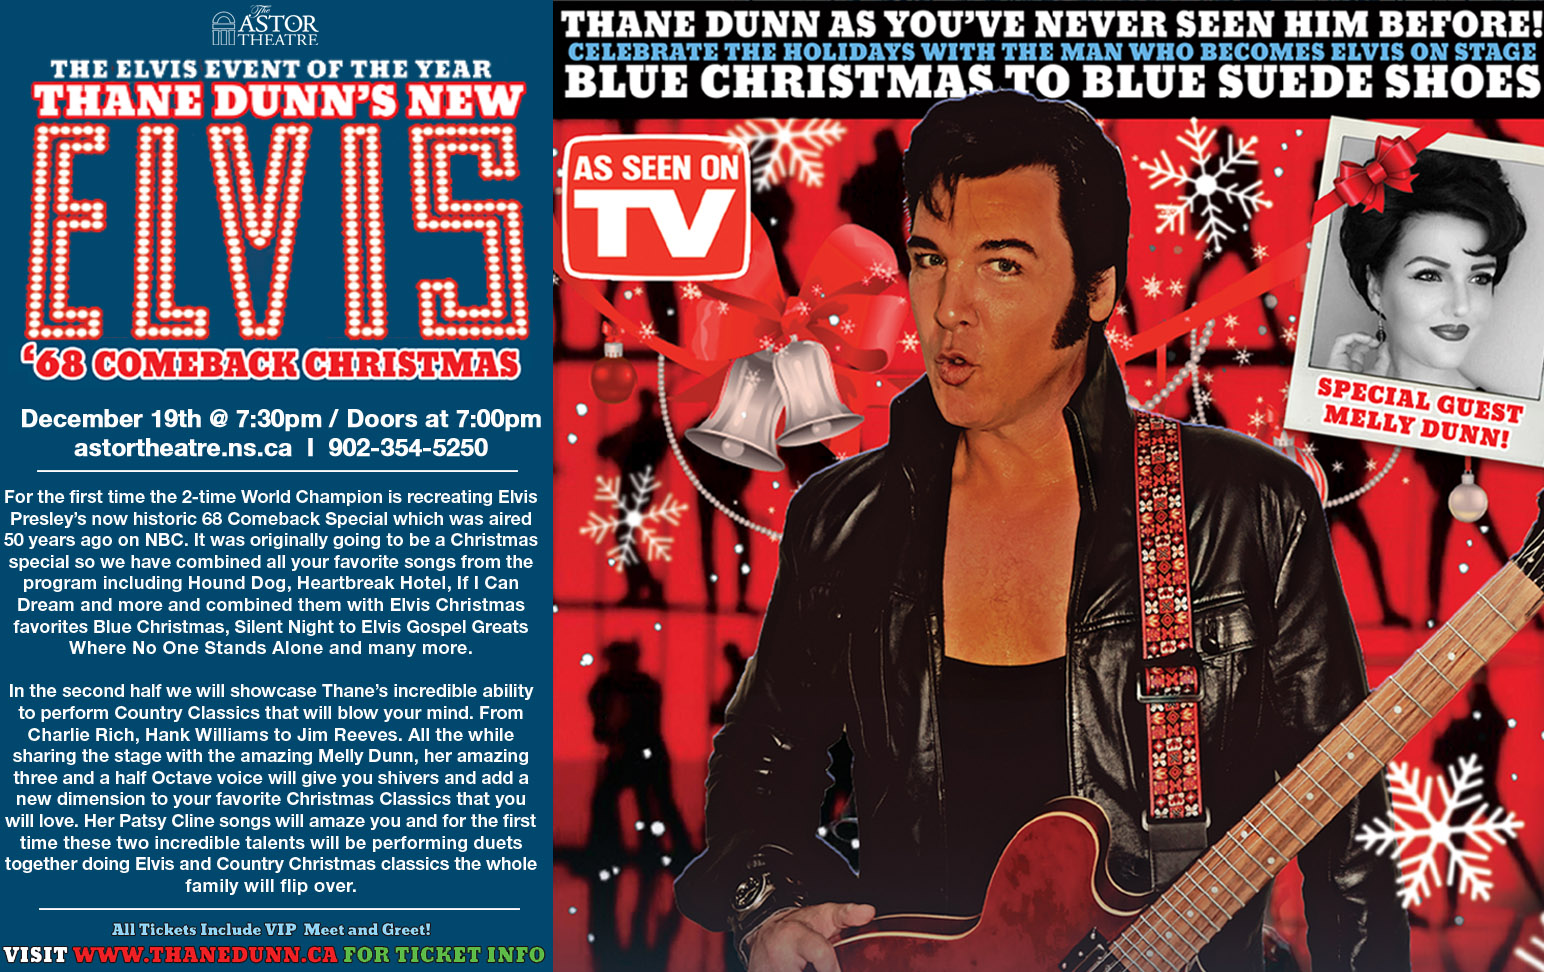 Thane Dunn's Elvis '68 Comeback Christmas @ Astor Theatre